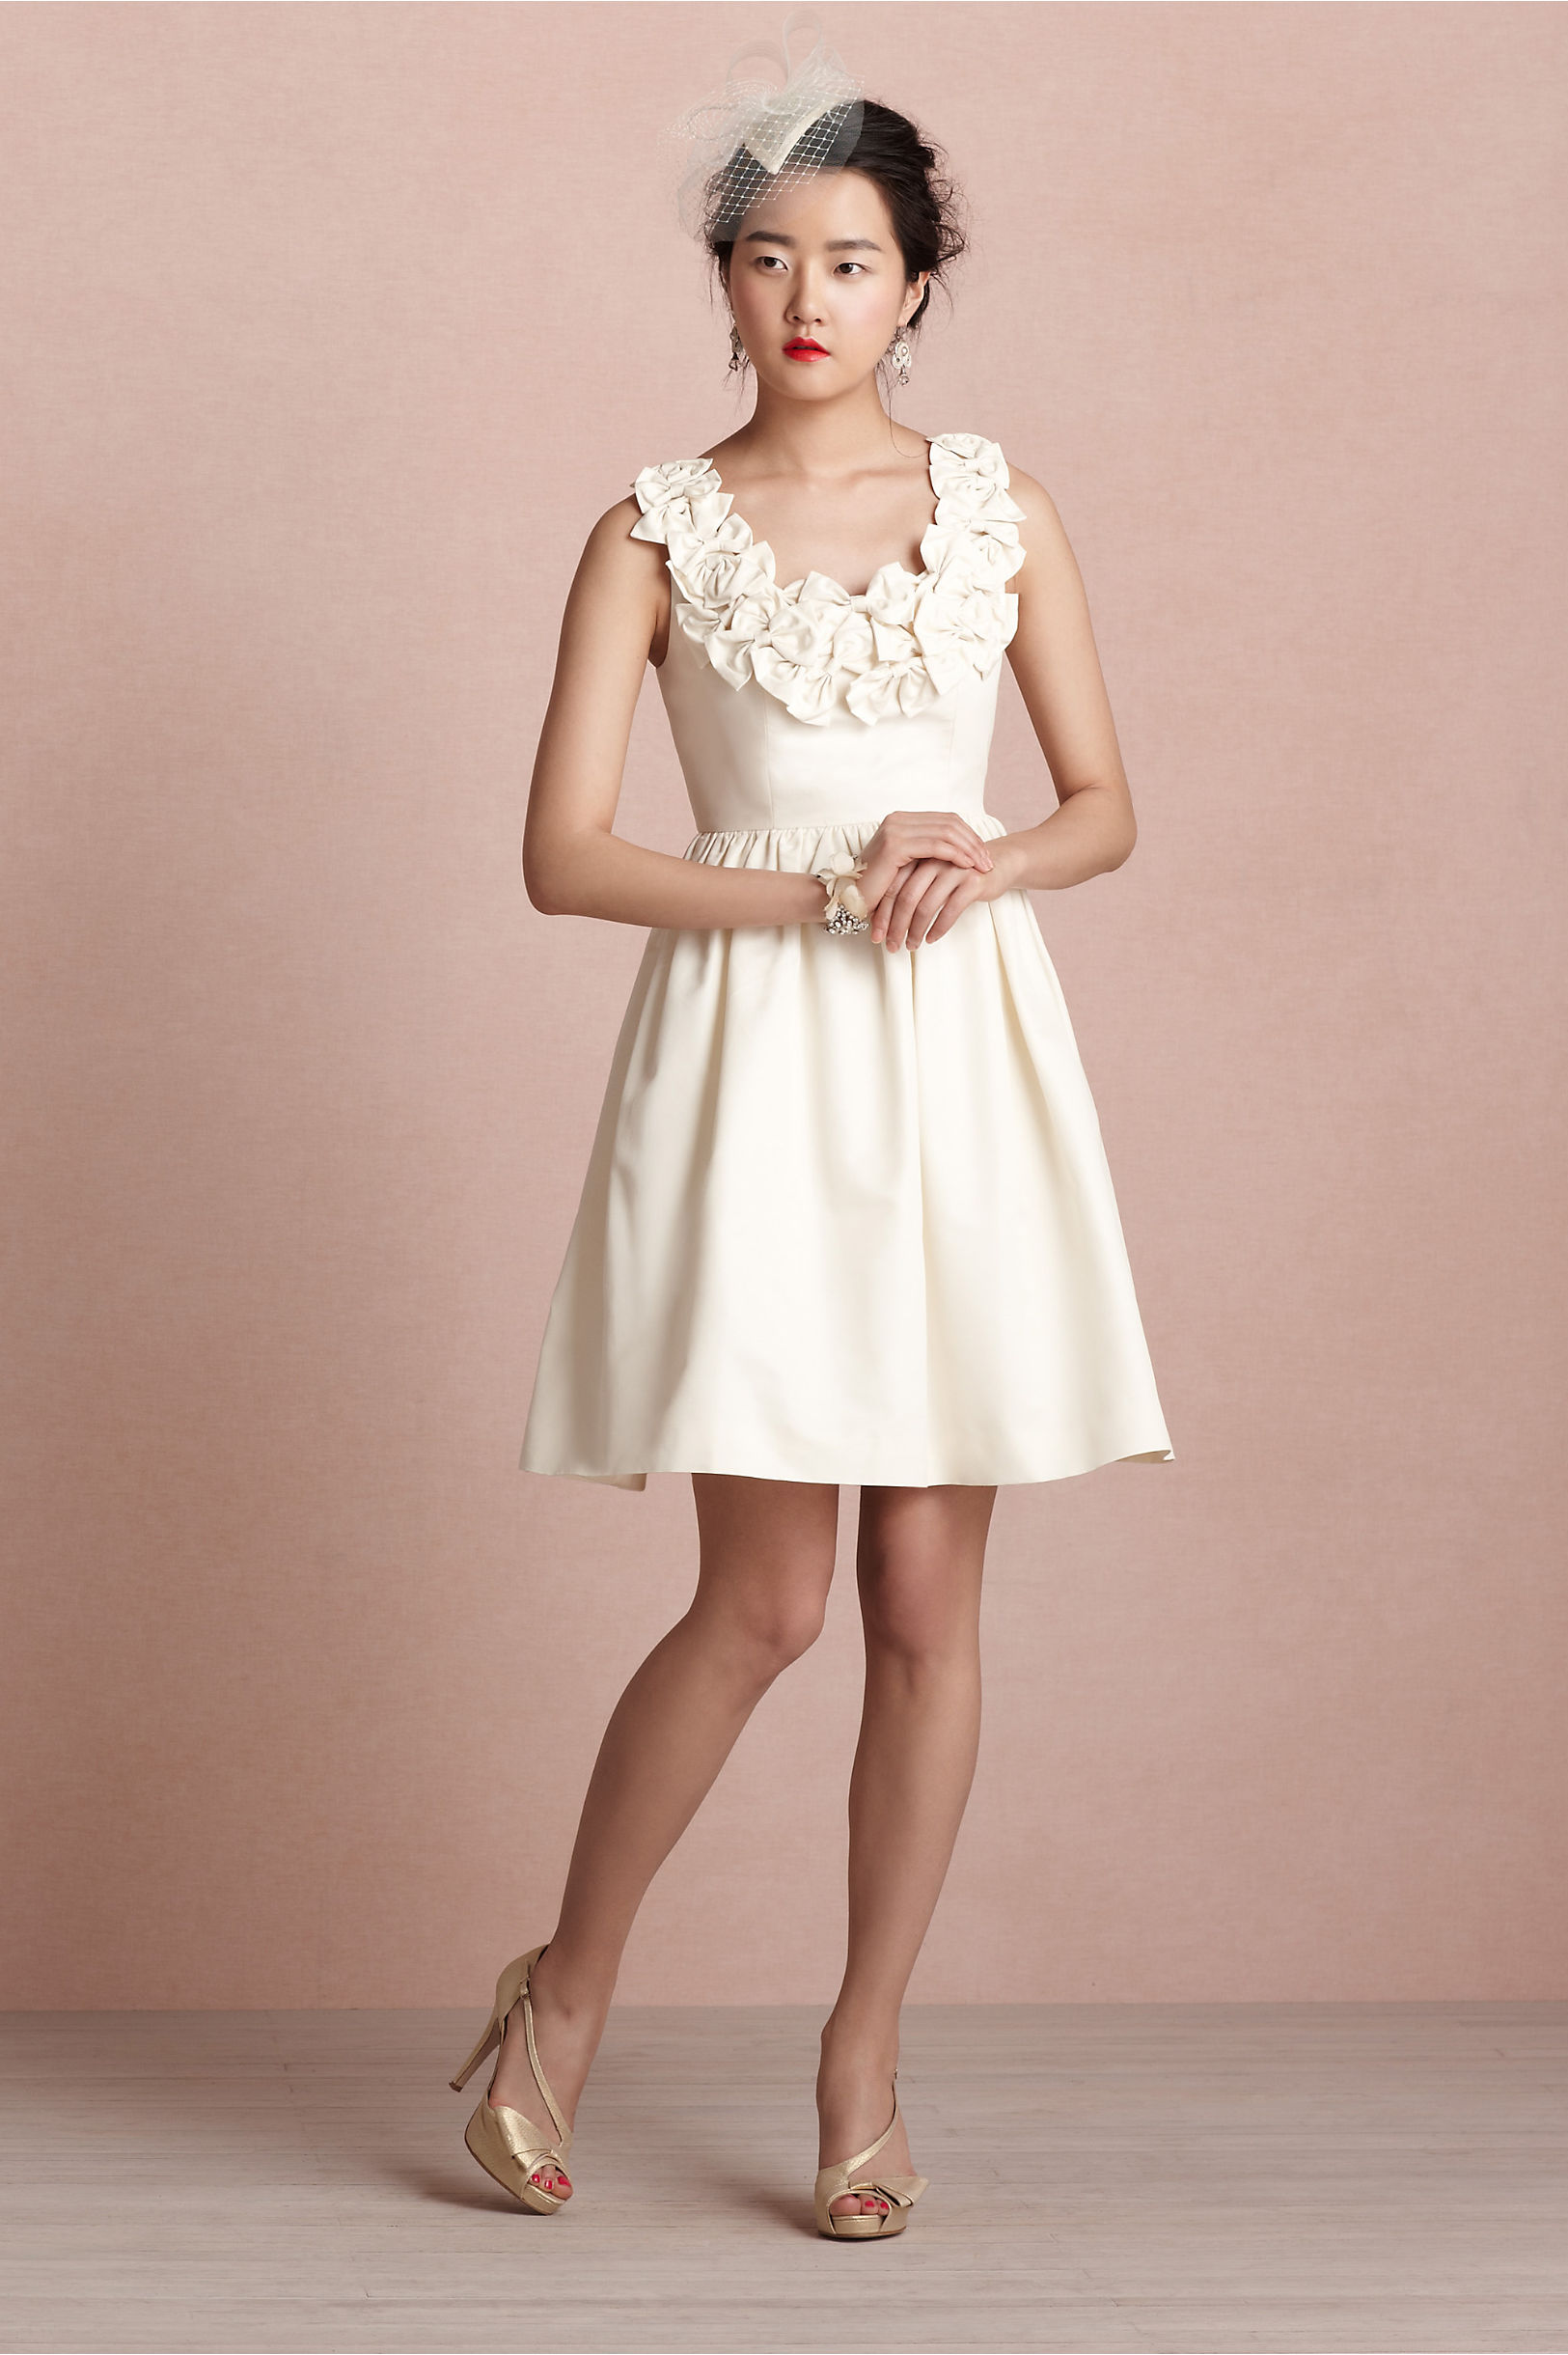 Ribboned Garland Dress in Sale | BHLDN